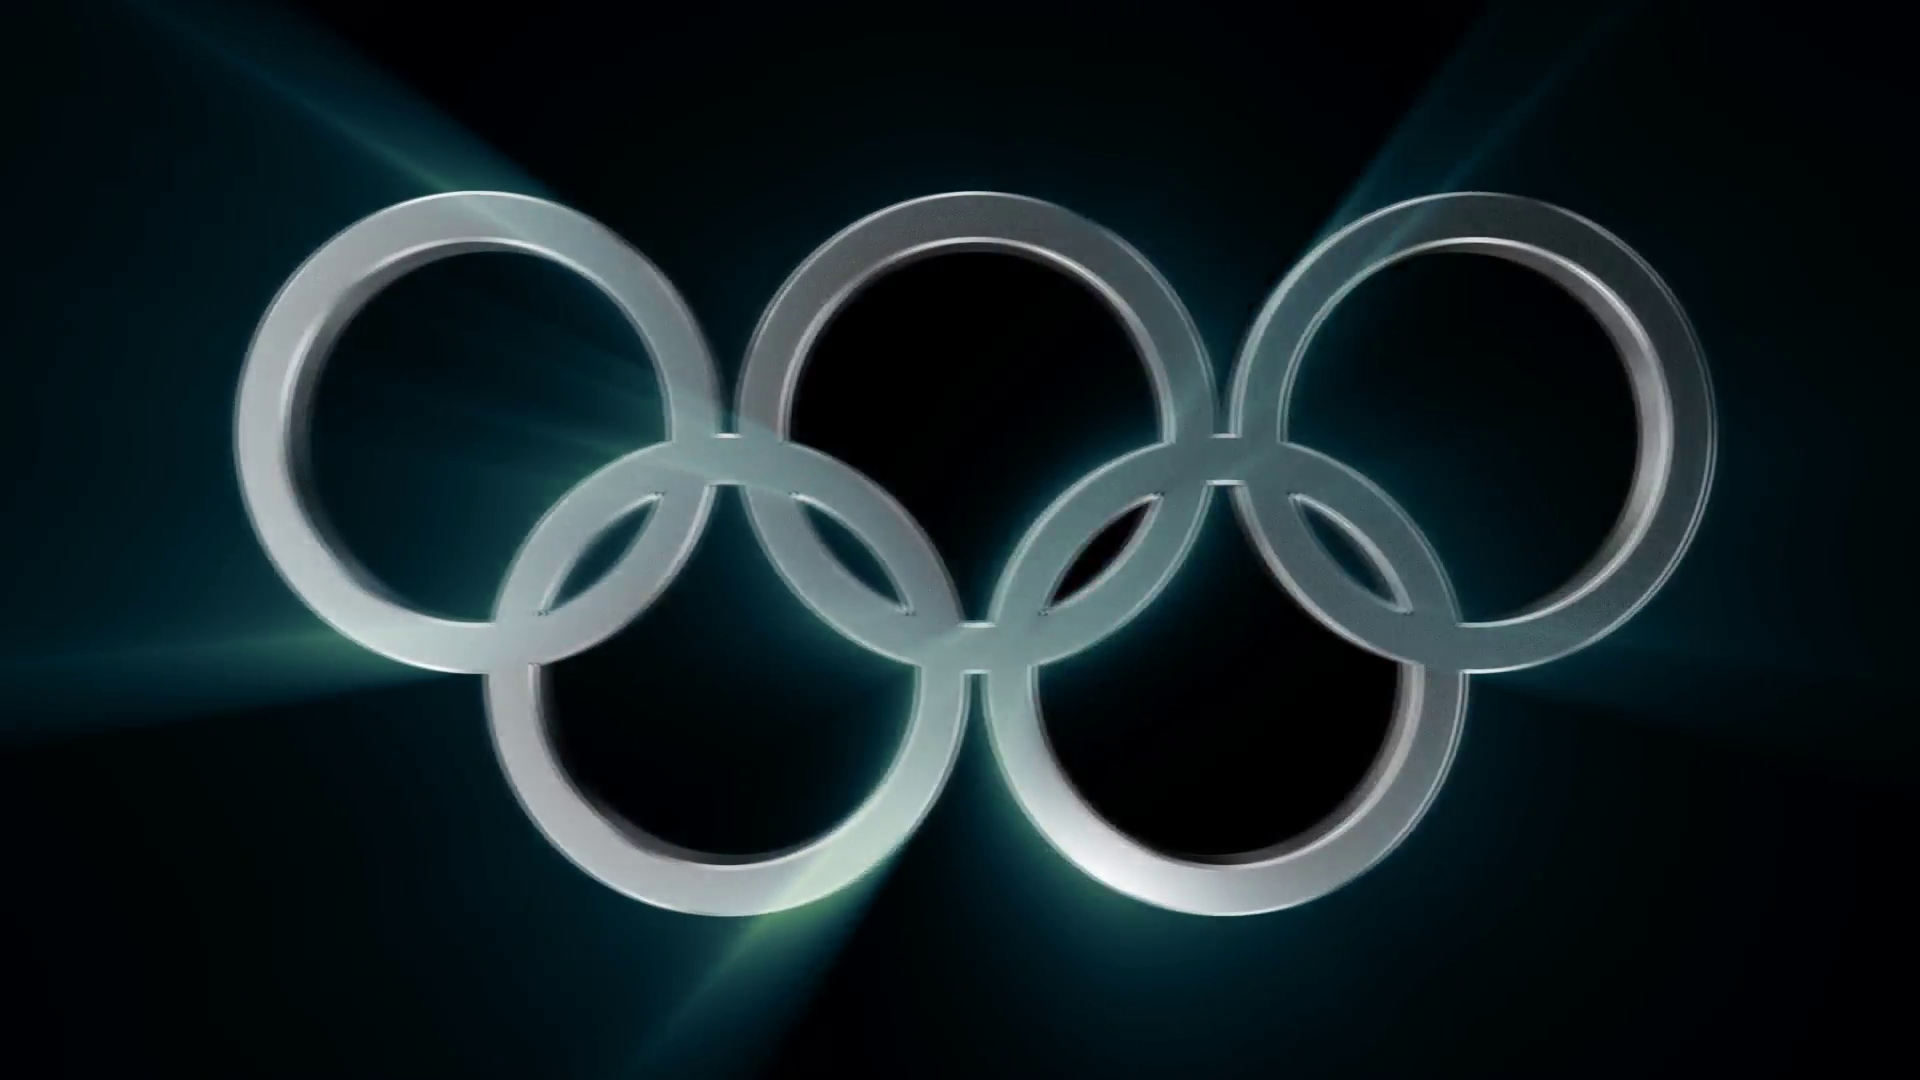 Olympic Rings Transition / PNG+Alpha Chanel Motion Background.